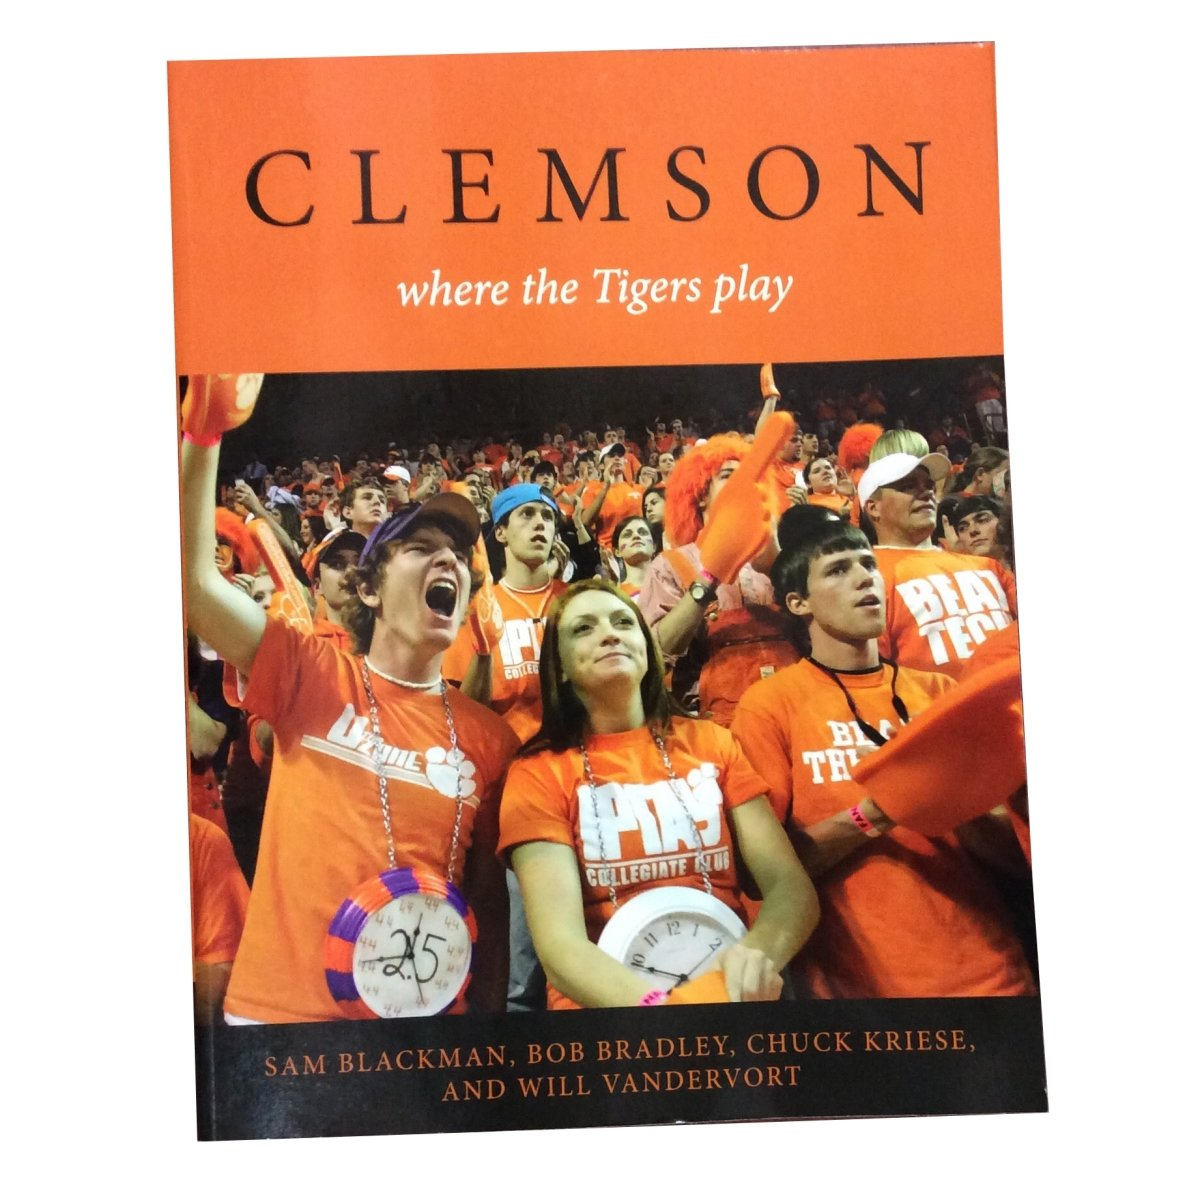 Clemson: Where the Tigers Play - Mr. Knickerbocker